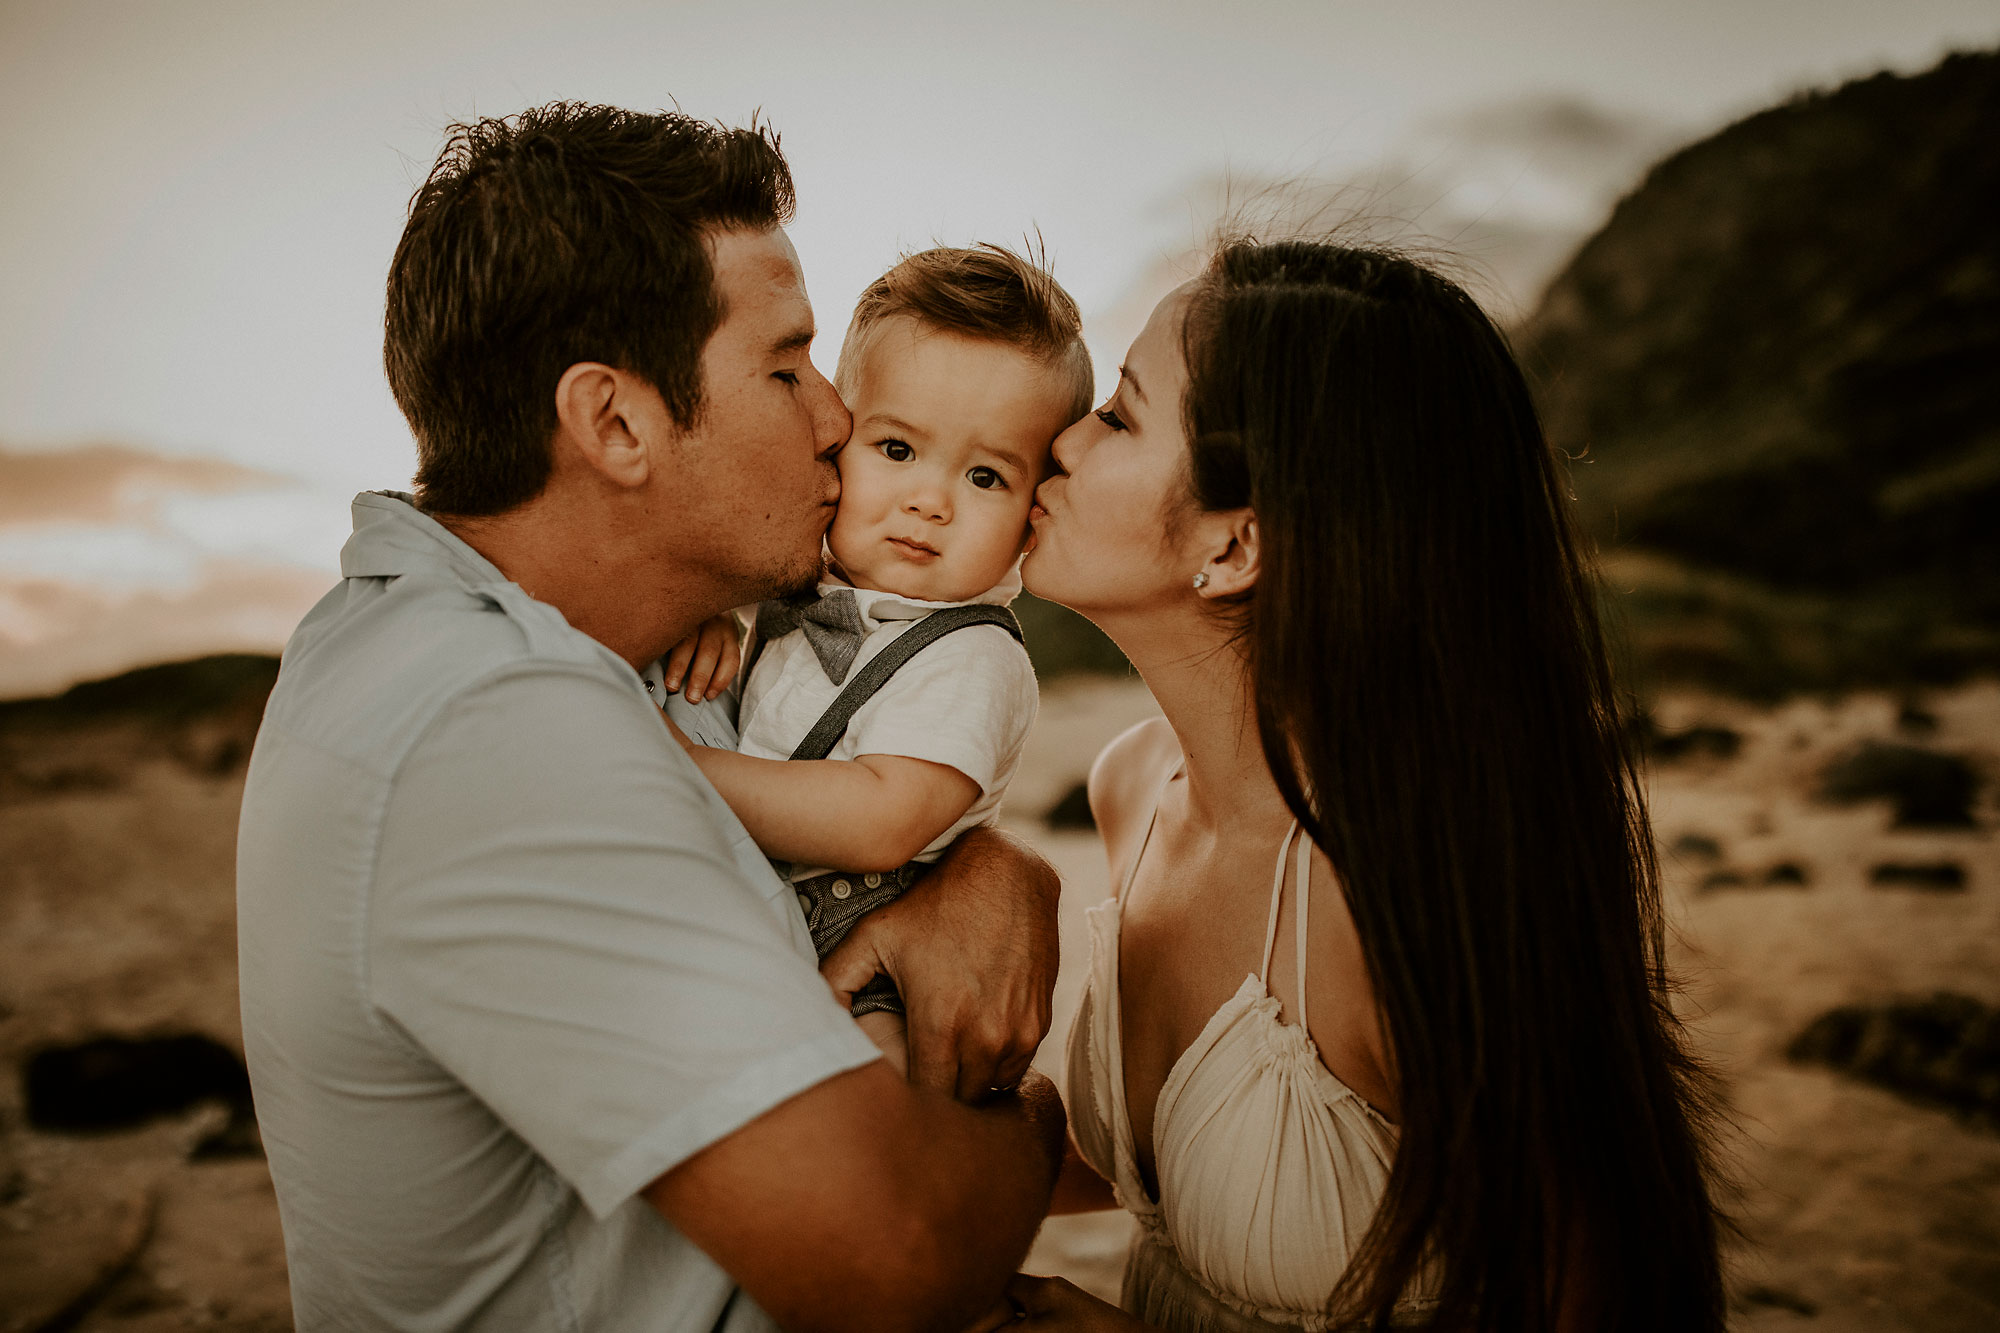 Kaena-Point-Sunrise-Family-Photographer-Hawaii-07.jpg